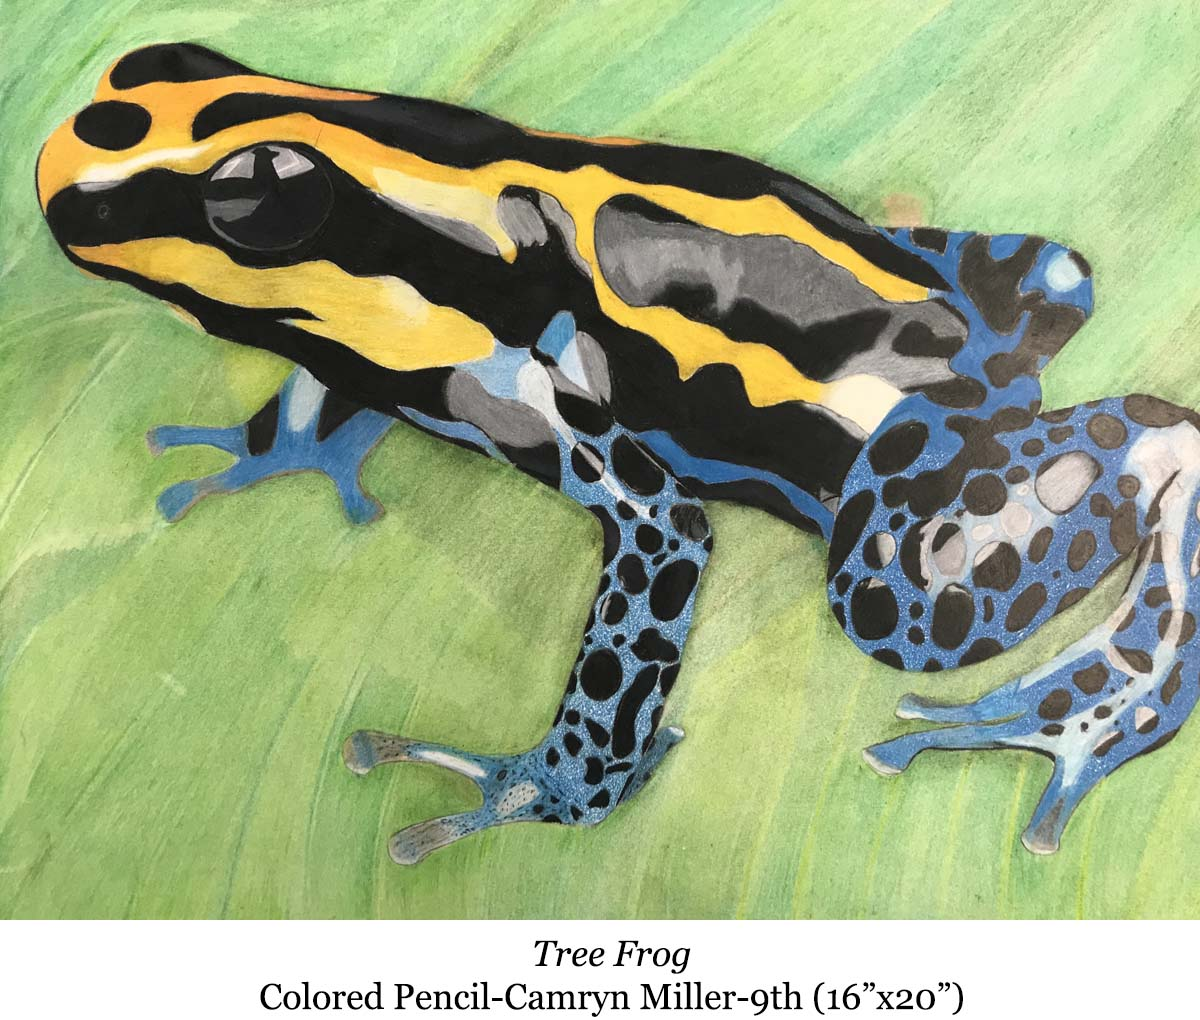 1588002934-tree_frog-colored_pencil-camryn_miller-9th__16_x20__